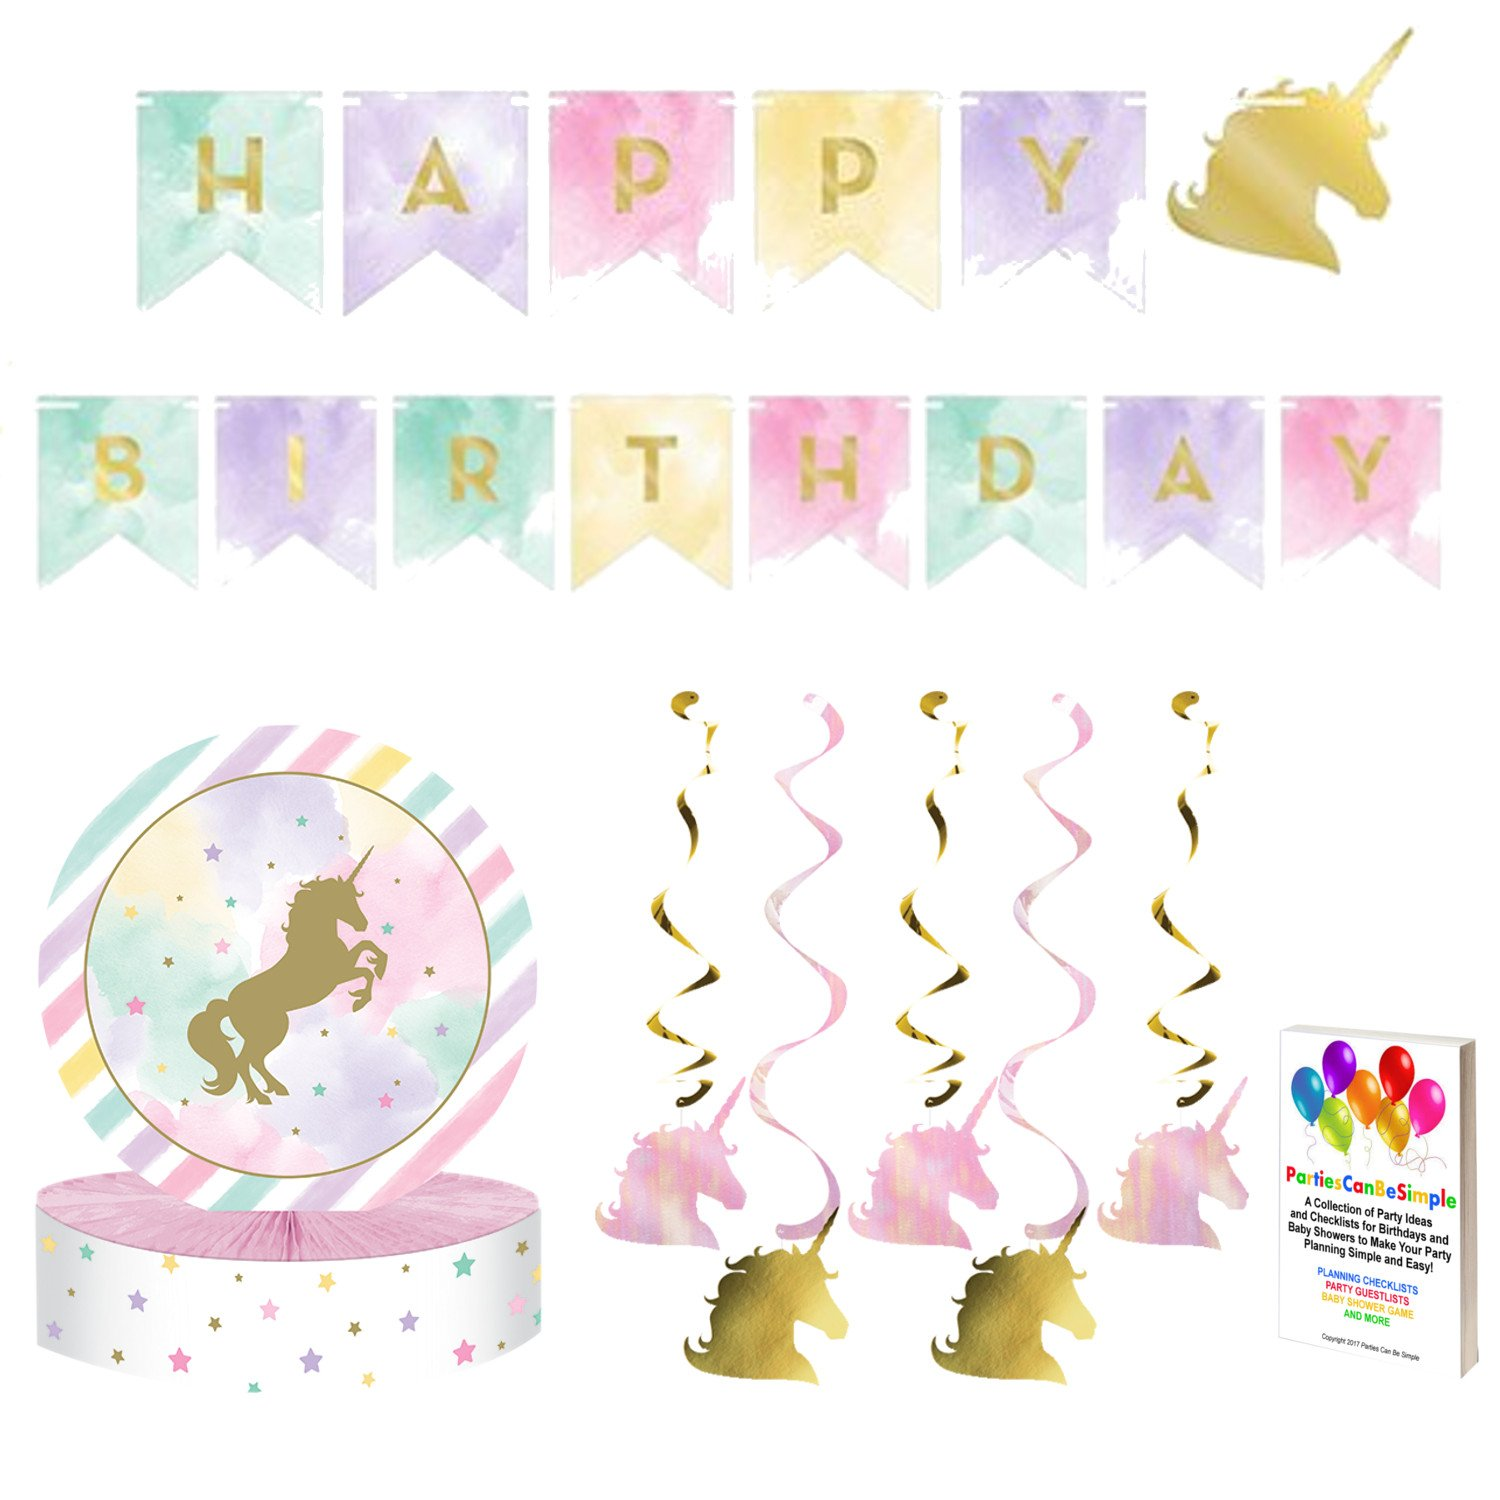 Unicorn Pink and Metallic Gold Sparkle Party Supplies Decoration Kit by Parties Can Be Simple